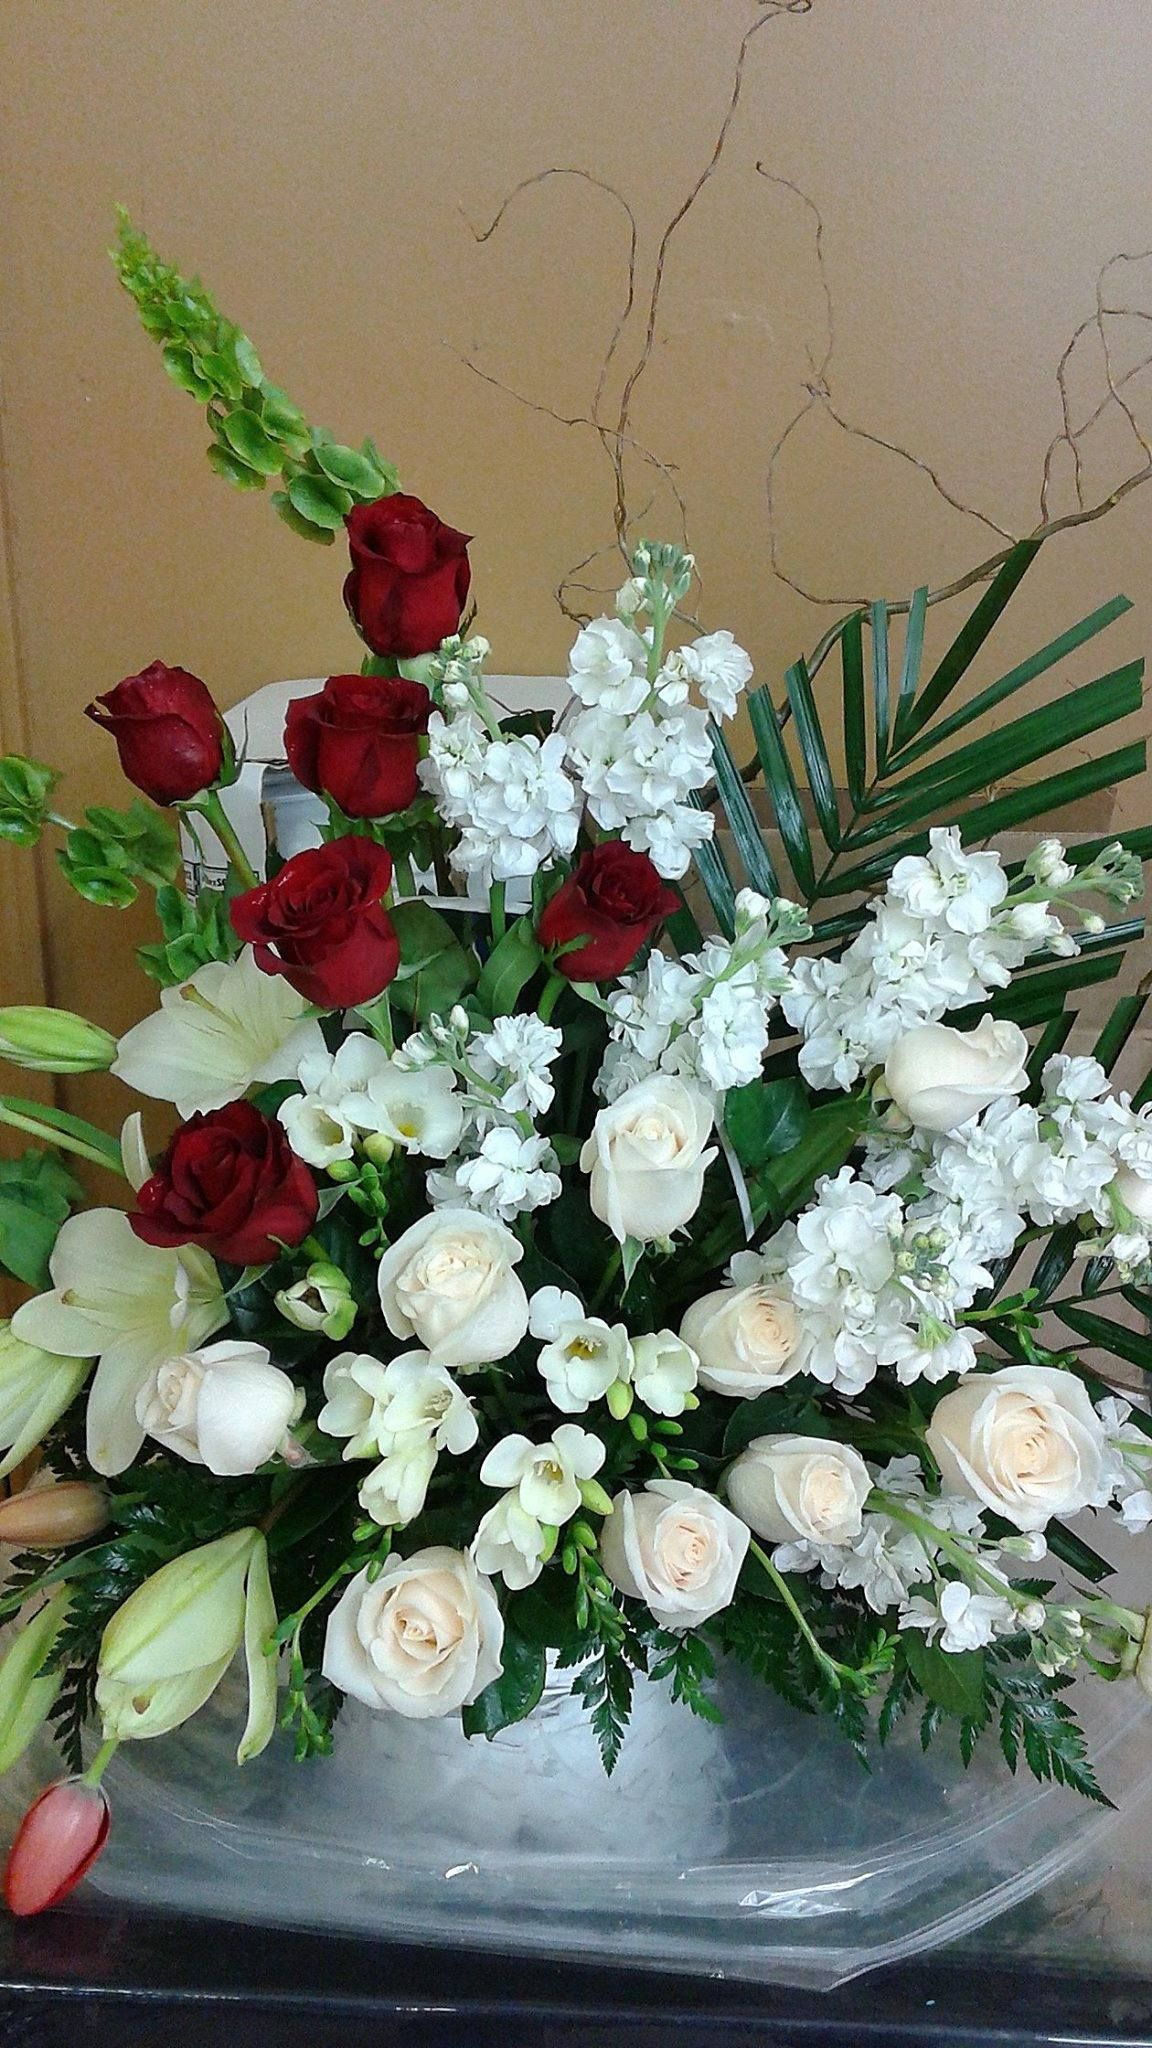 We Offer Beautiful Selections Of Funeral And Sympathy Flower